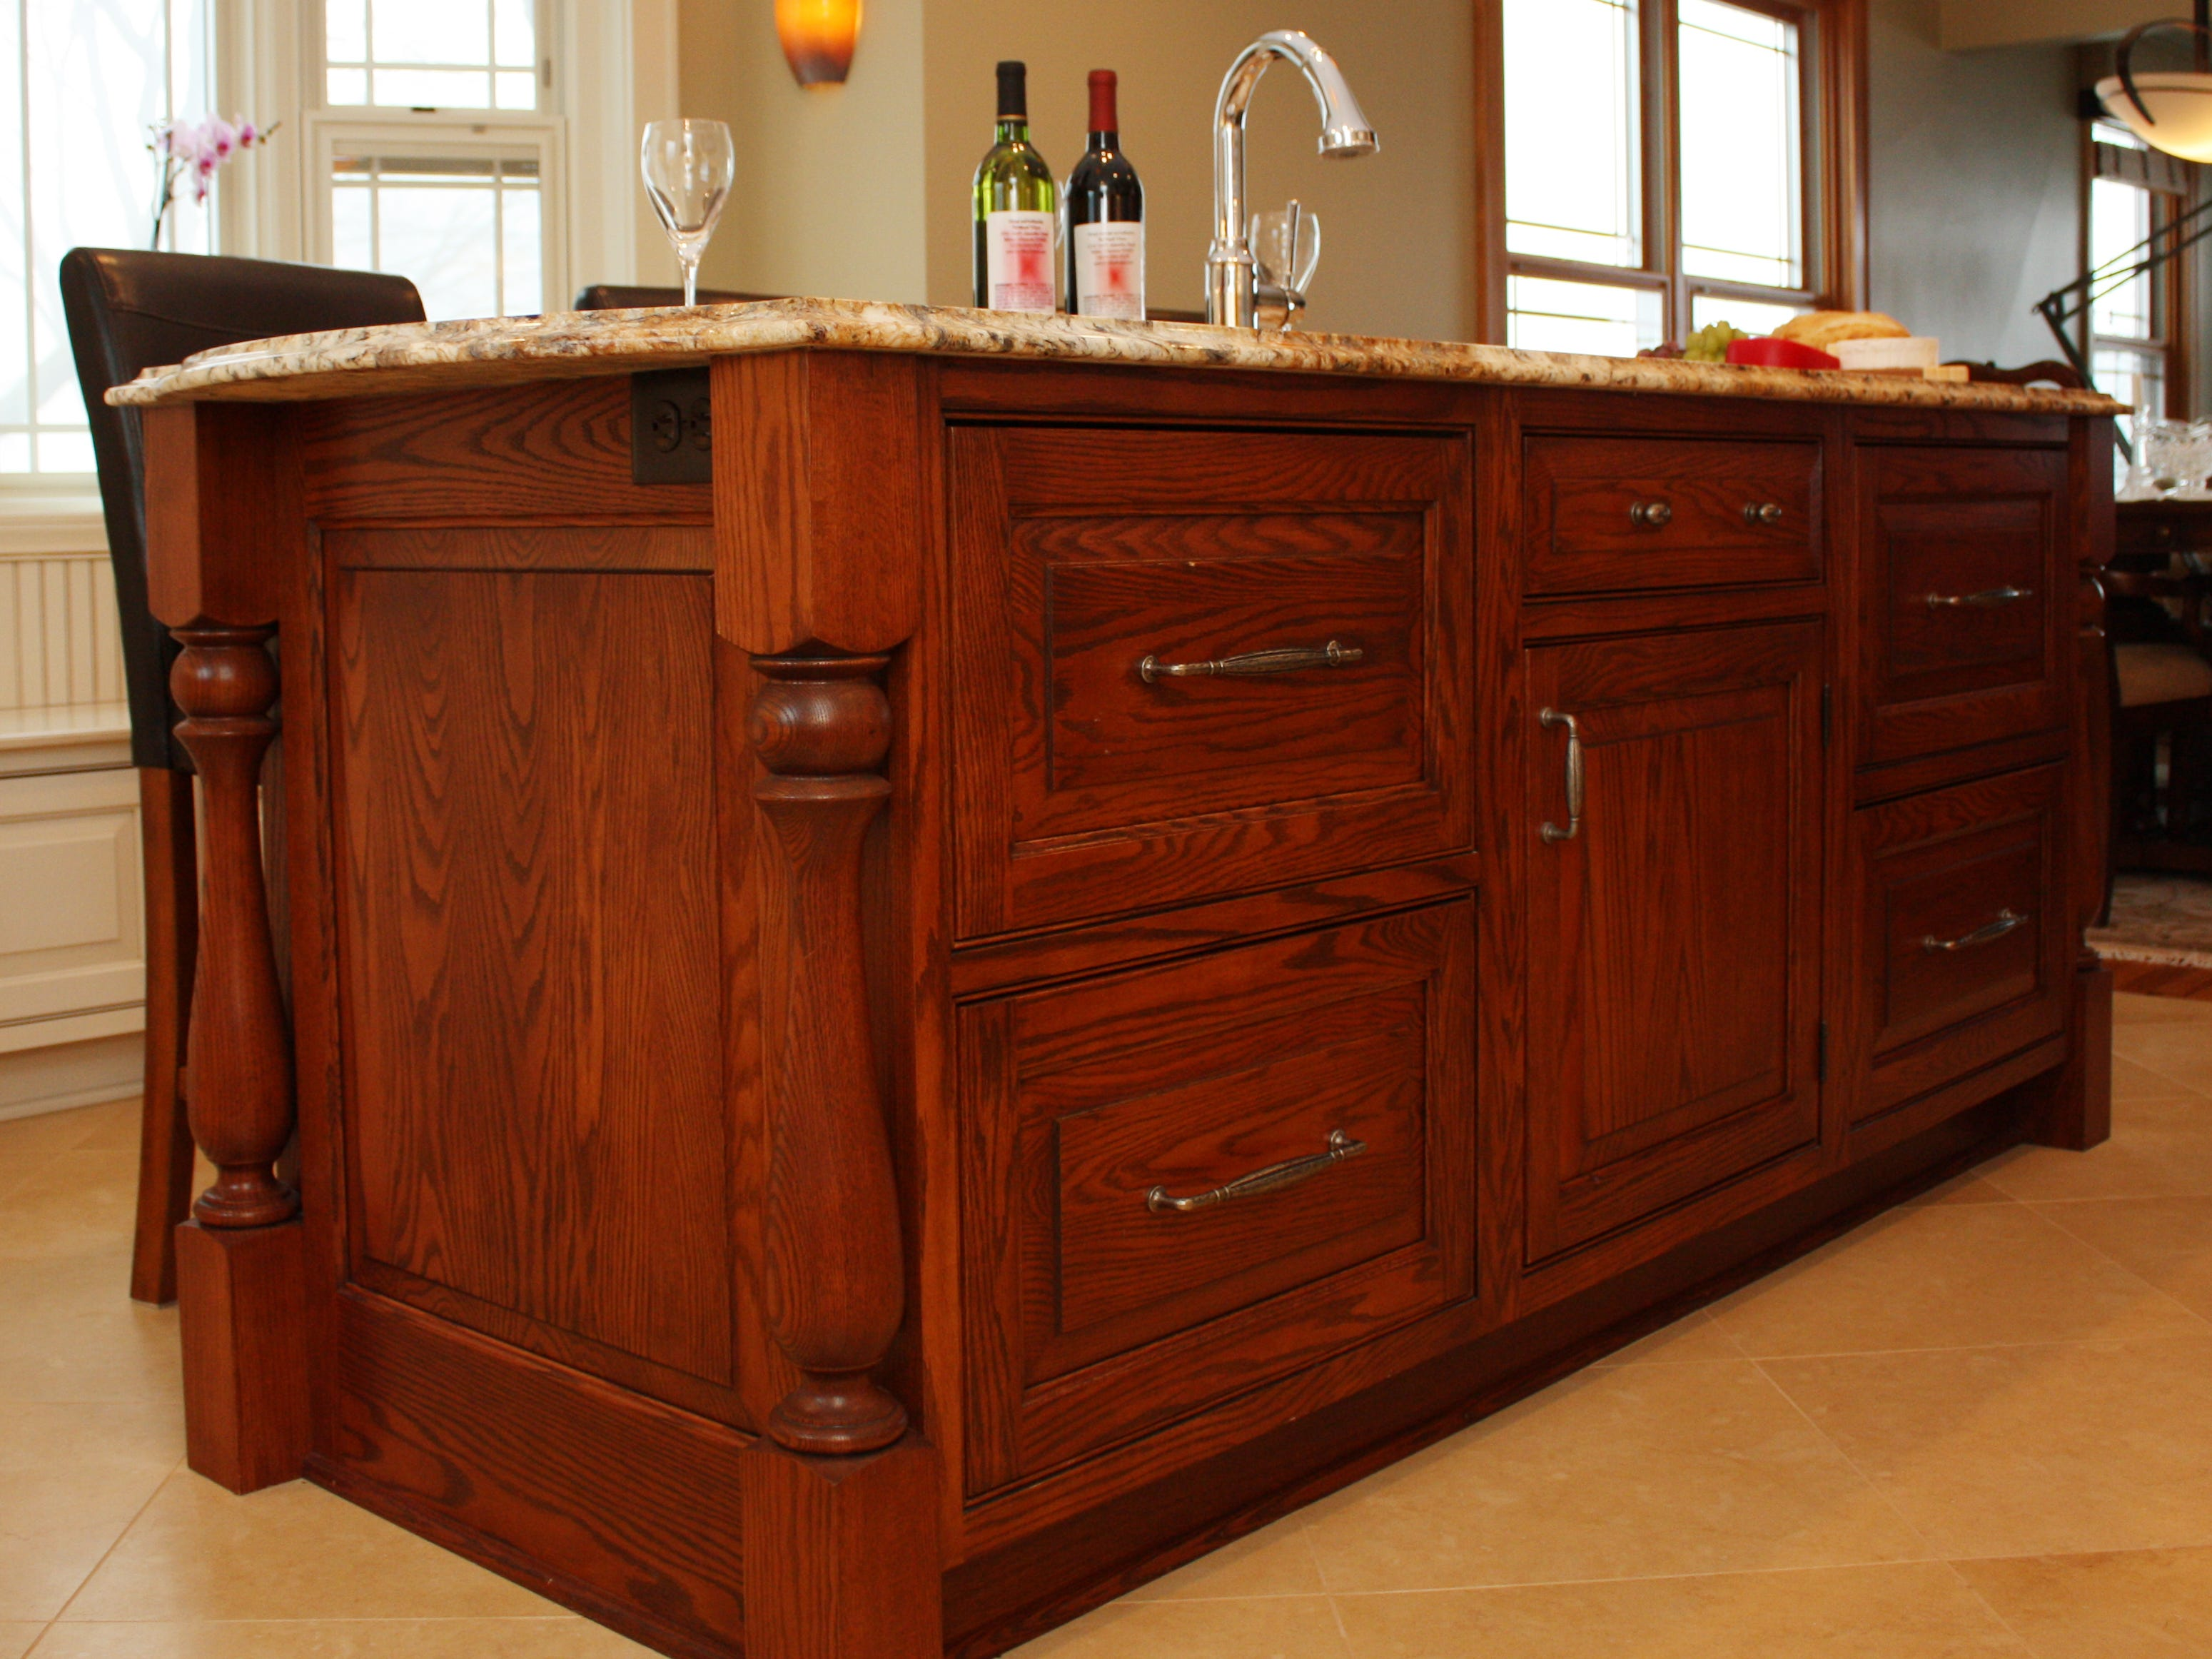 This large island in Milwaukee supports a prep sink as well as functional storage and seating for gathering. (Greenfield Cabinetry)